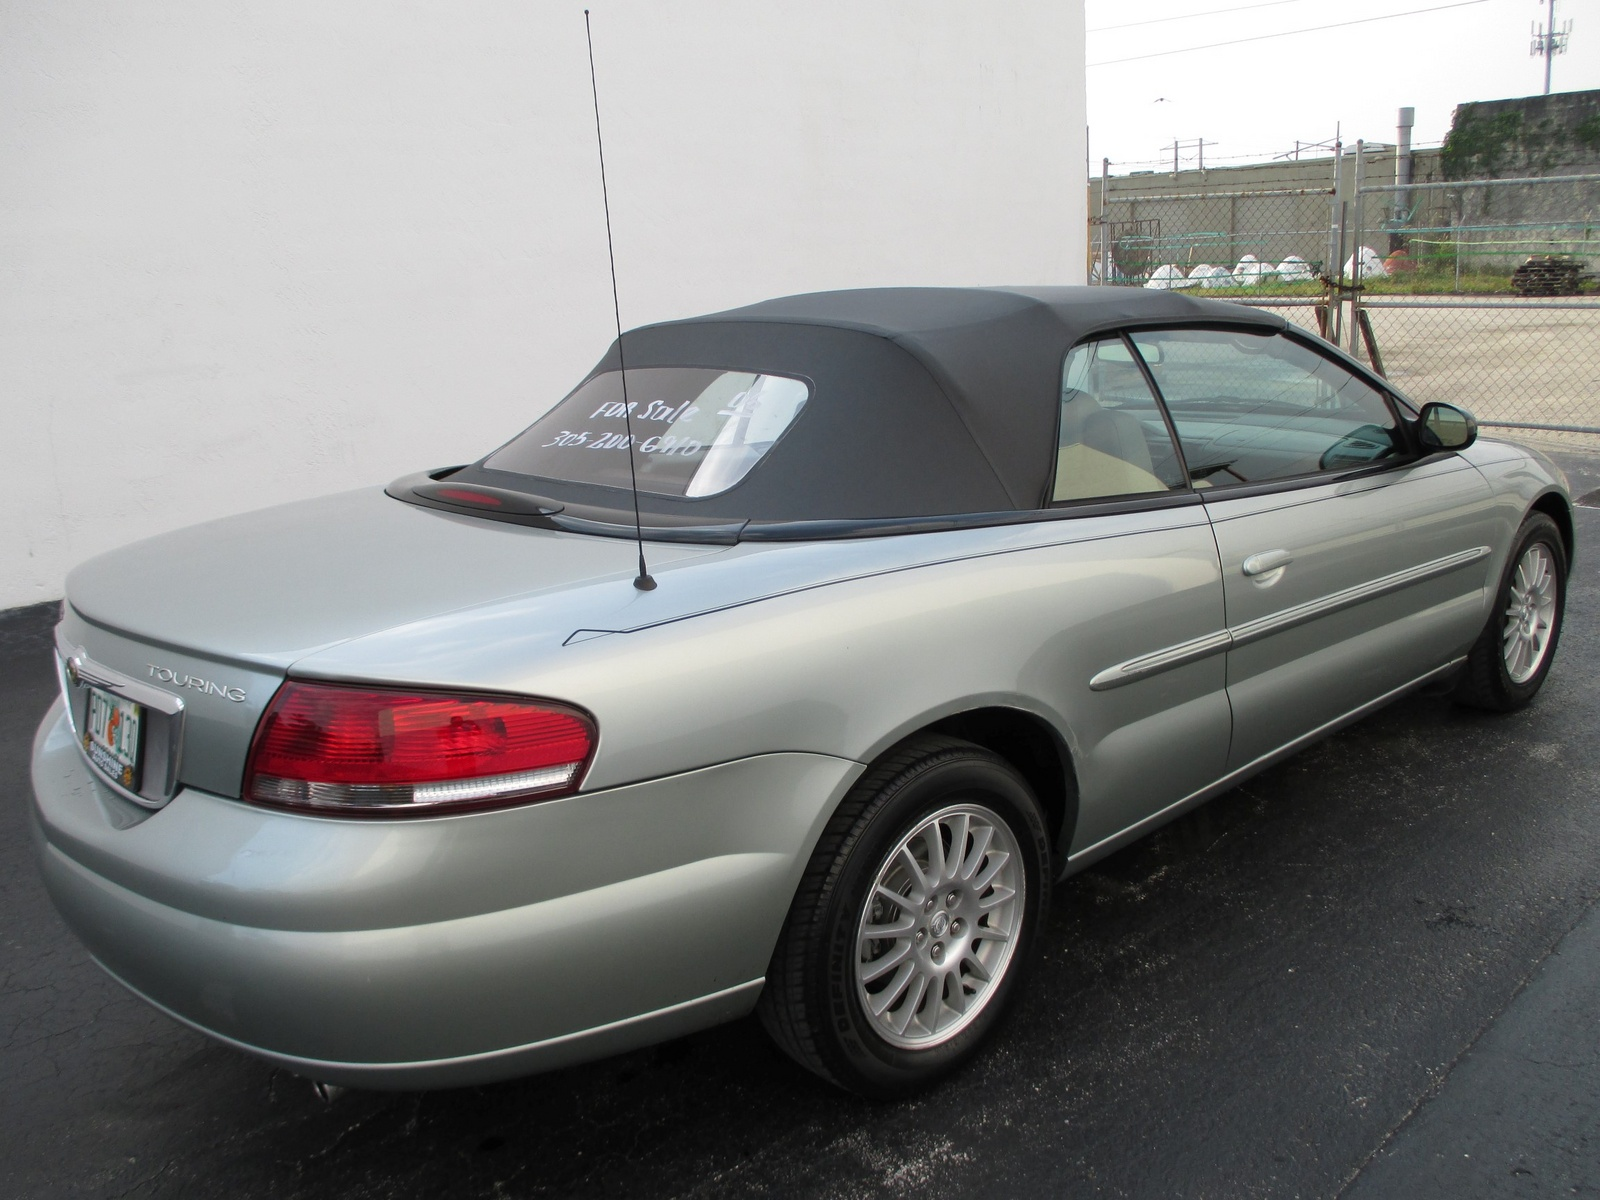 picture of 2006 chrysler sebring touring convertible exterior. Cars Review. Best American Auto & Cars Review